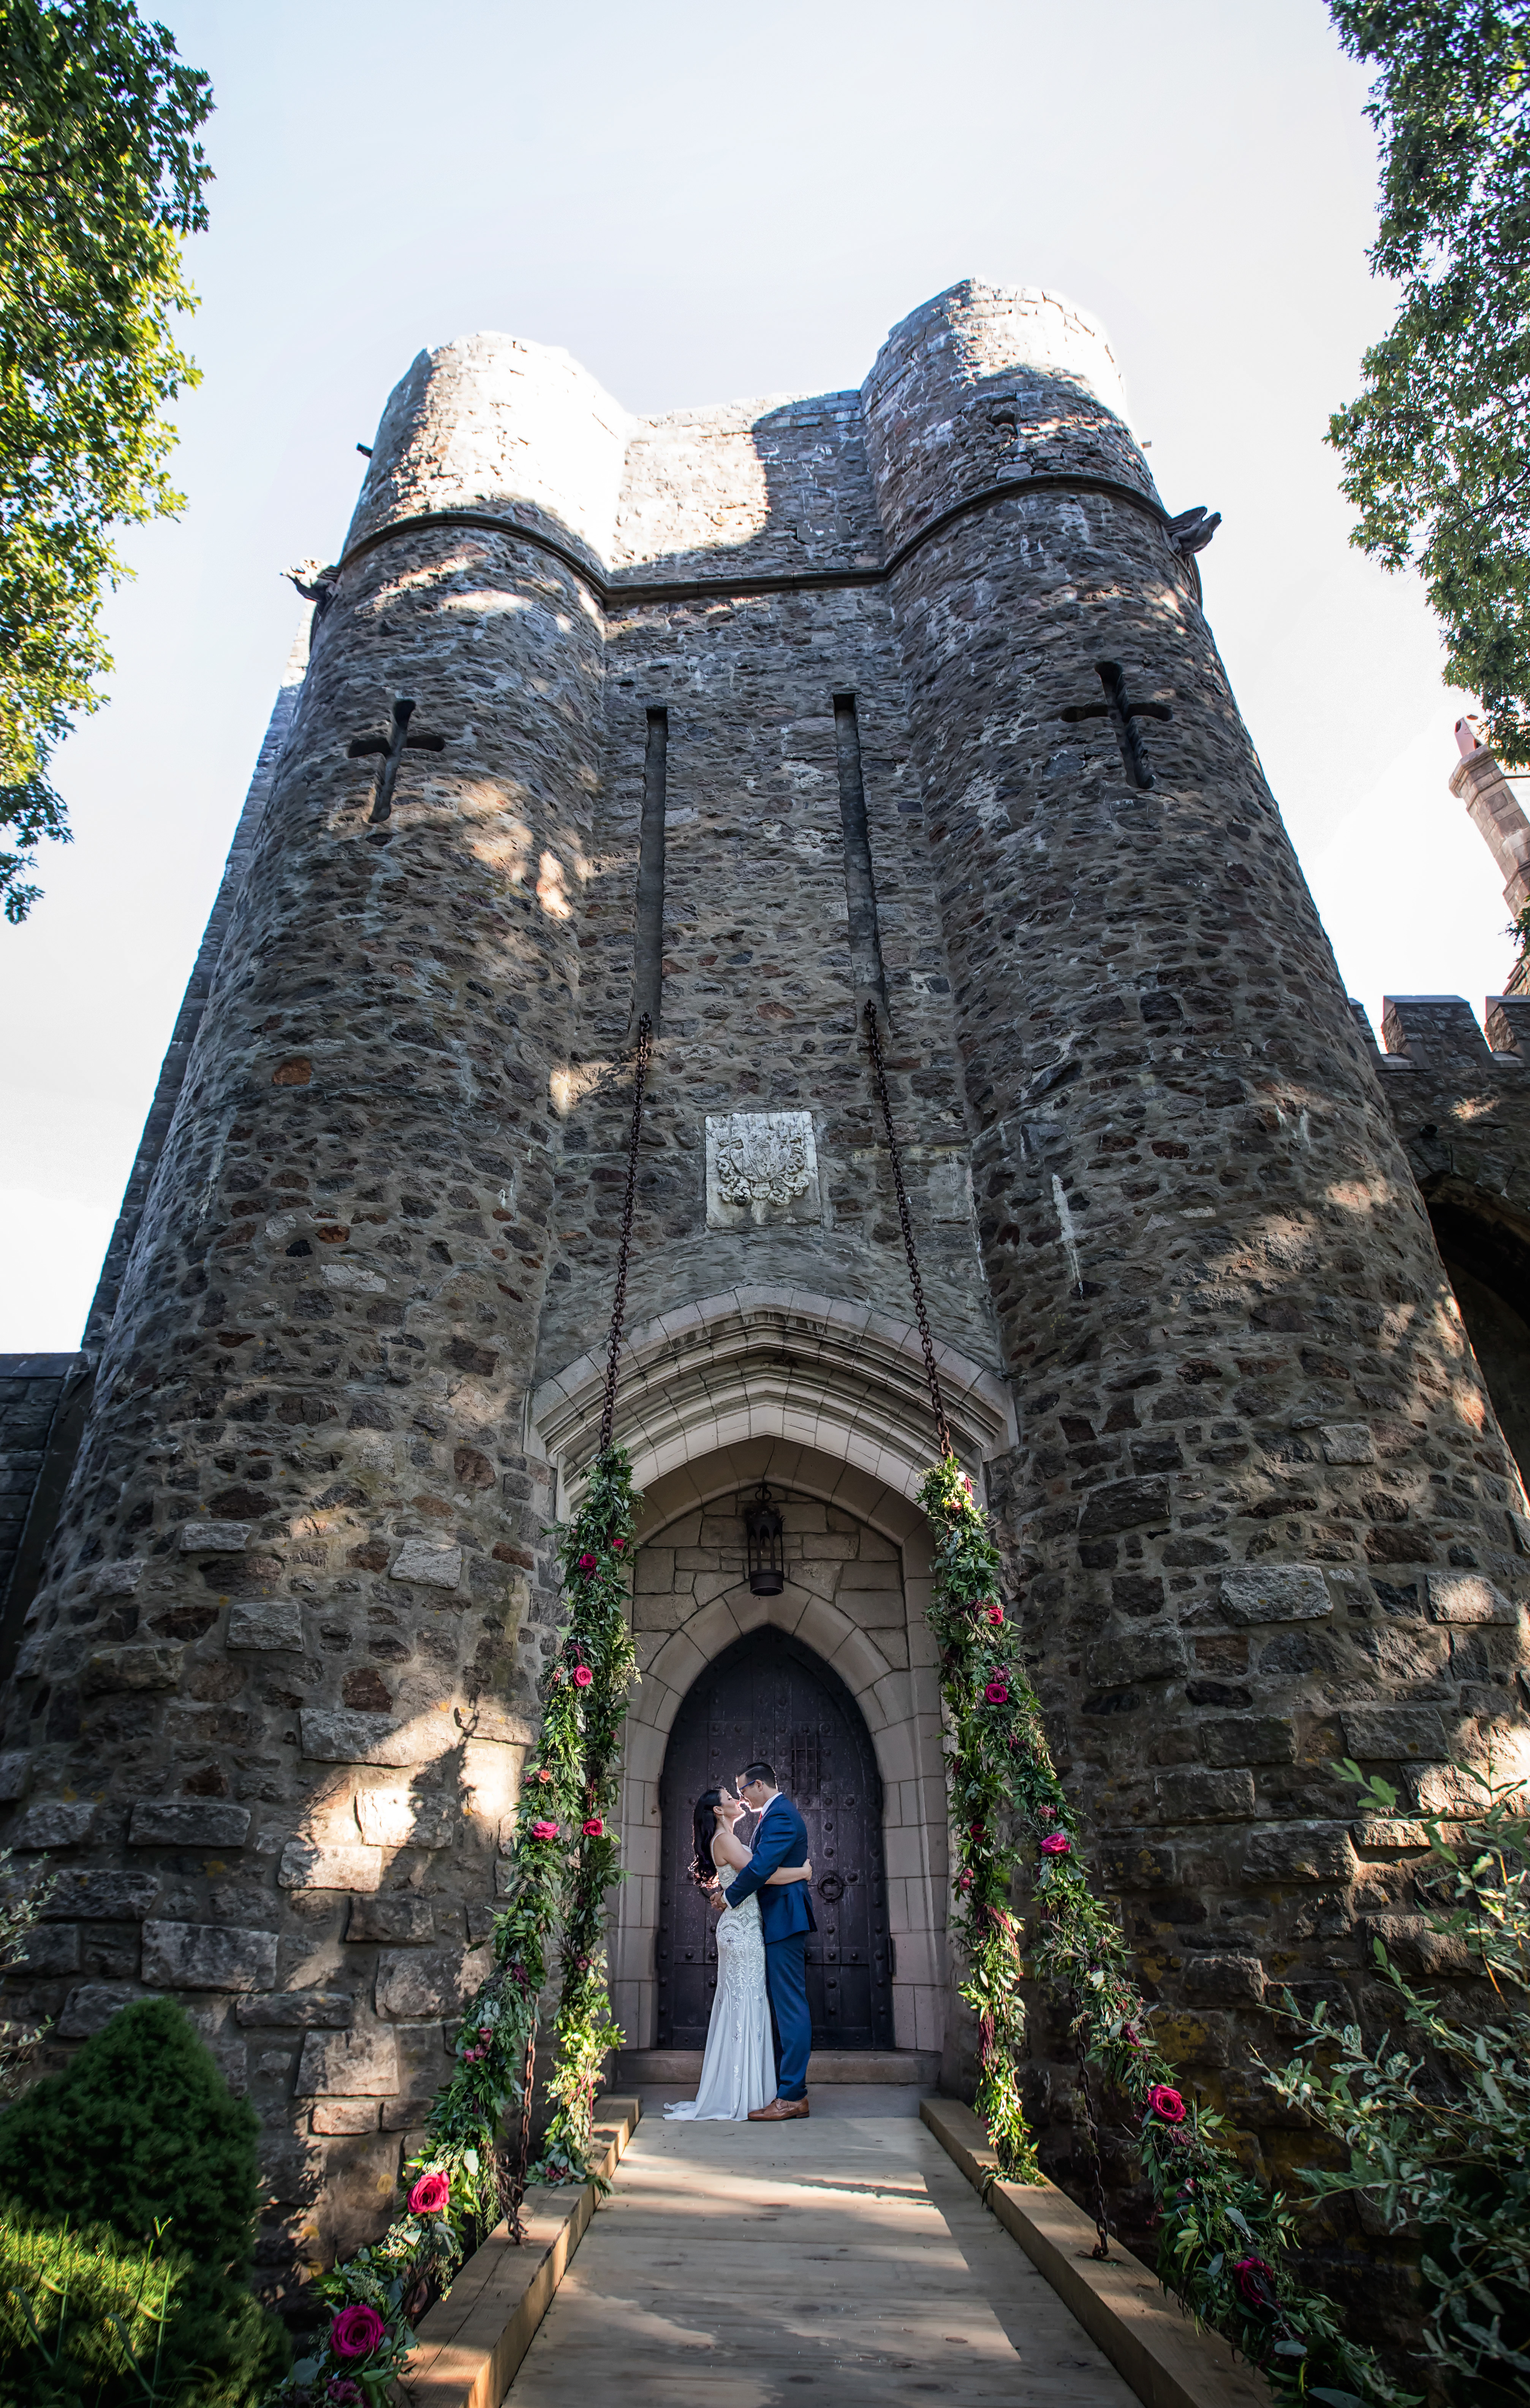 Bride and Groom photographed at Hammond Castle Museum. Wedding flower garlands go up the chains of the drawbridge. Dark and moody wedding photos. Wedding Inspiration at Hammond Castle.